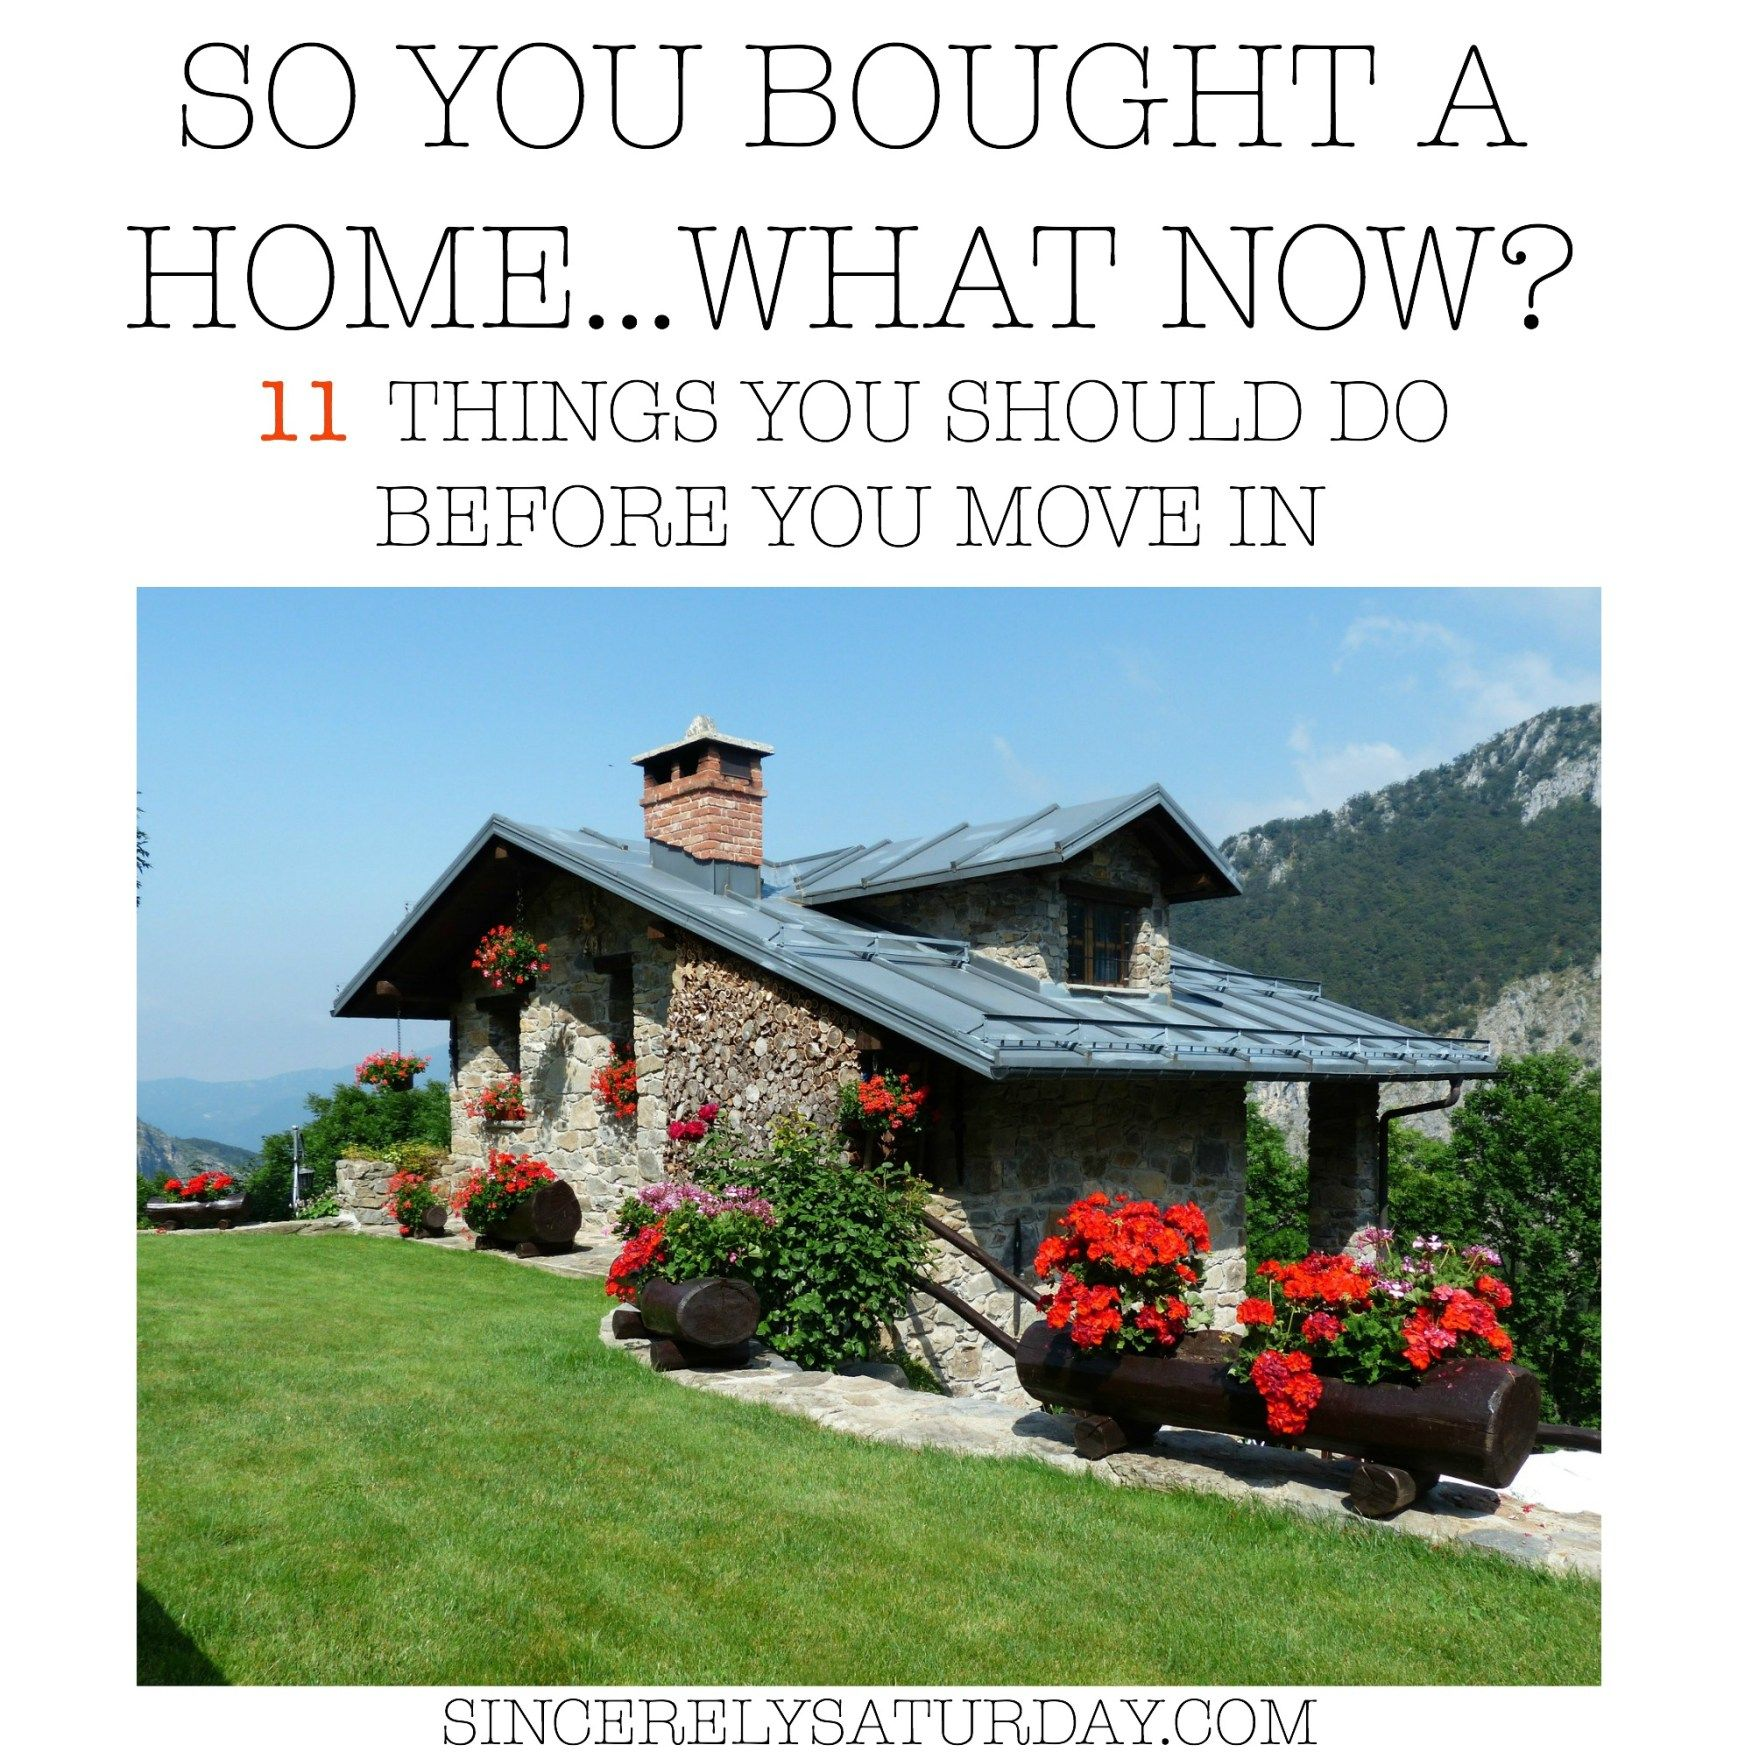 So You Bought A Home What Now